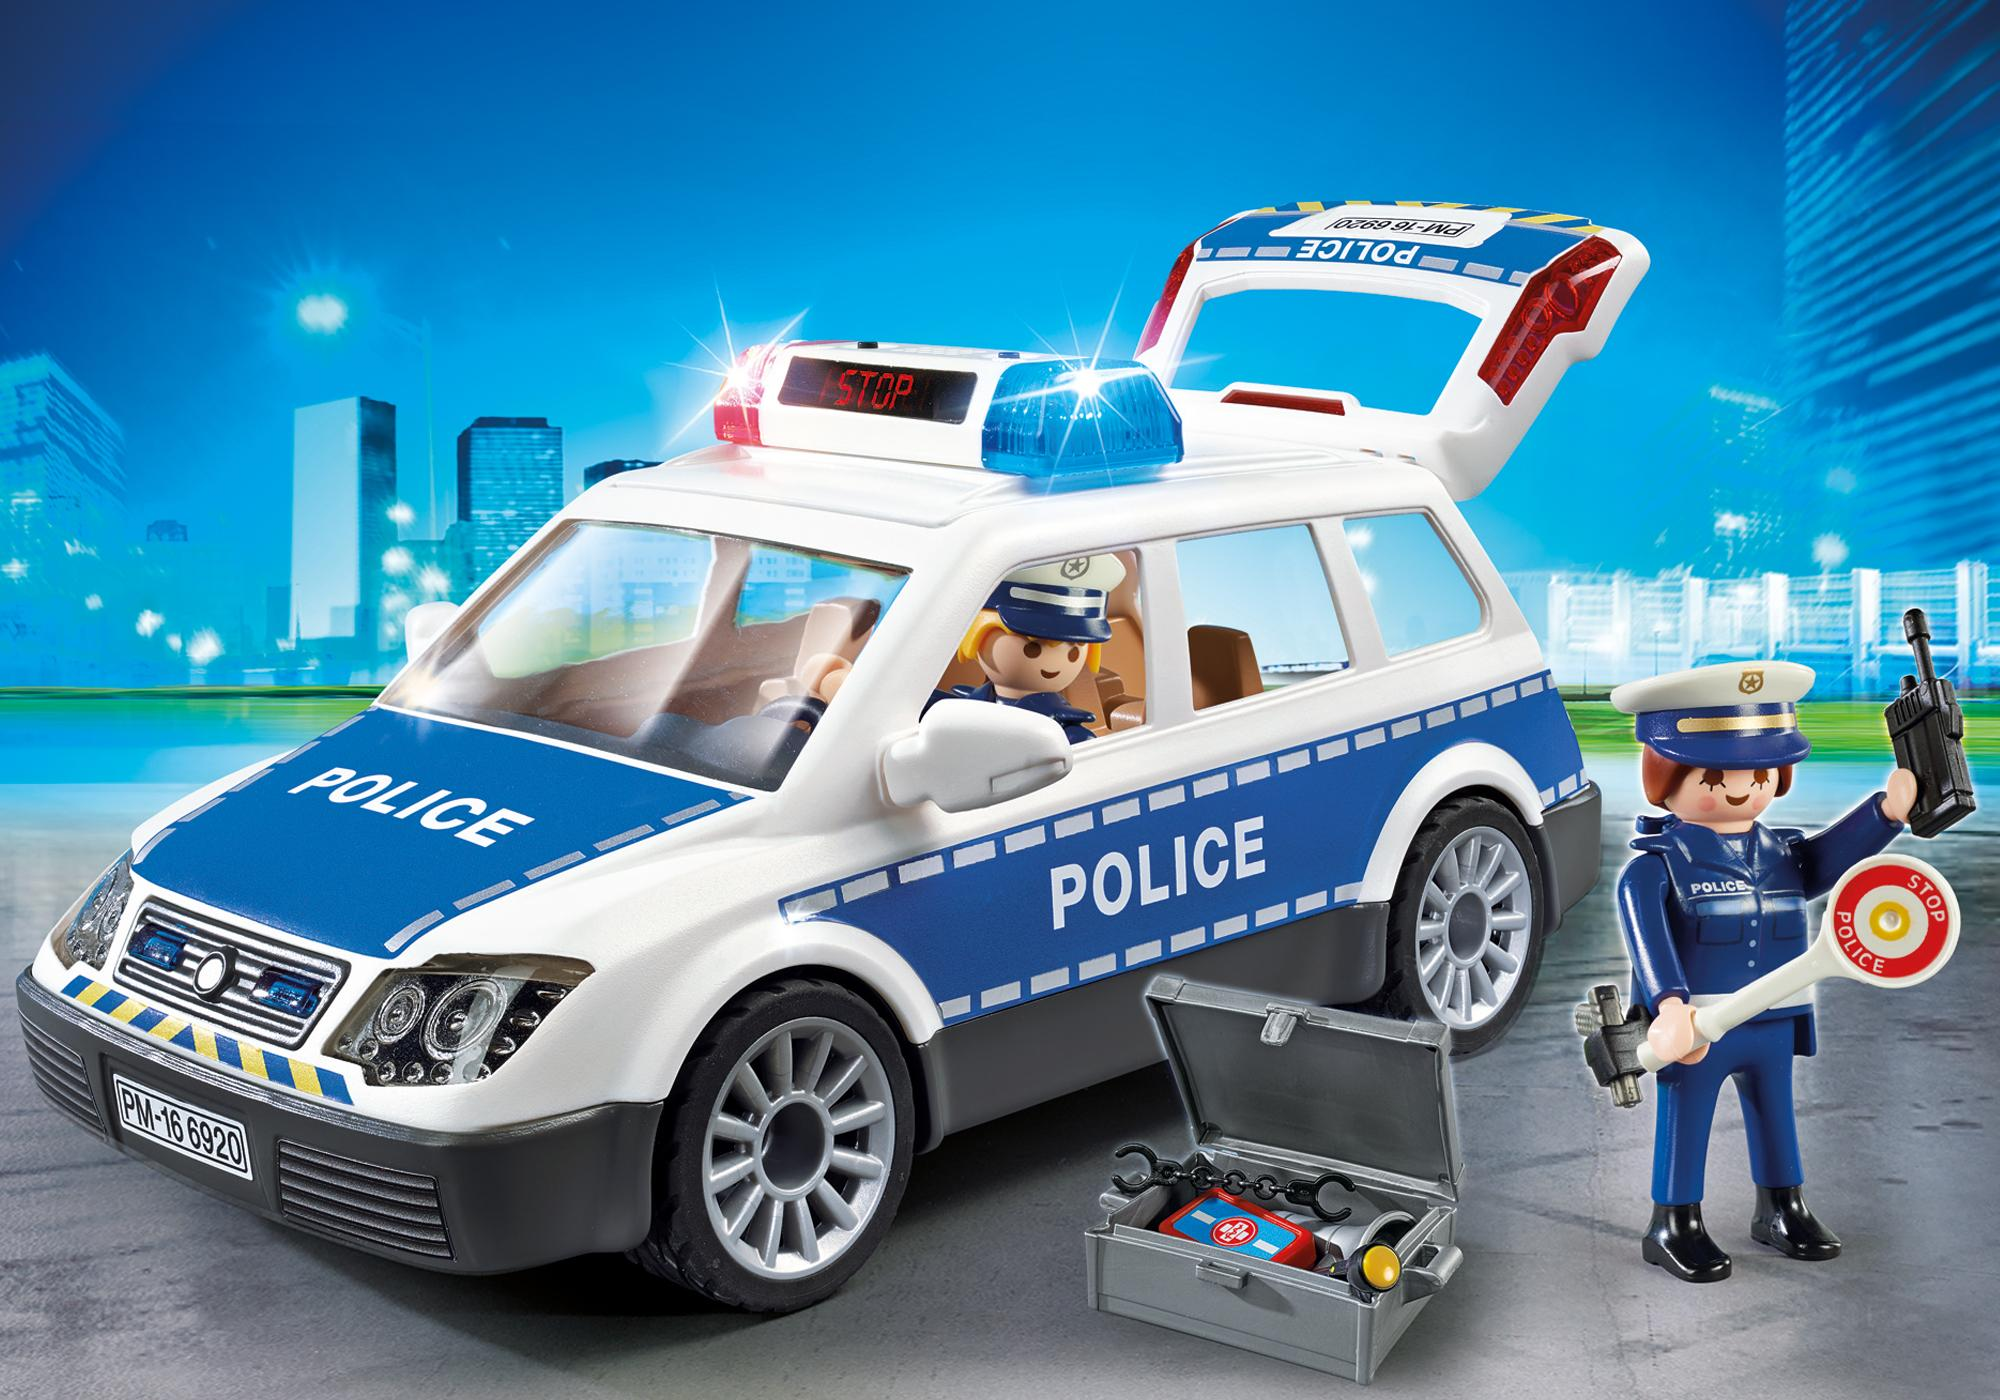 http://media.playmobil.com/i/playmobil/6920_product_detail